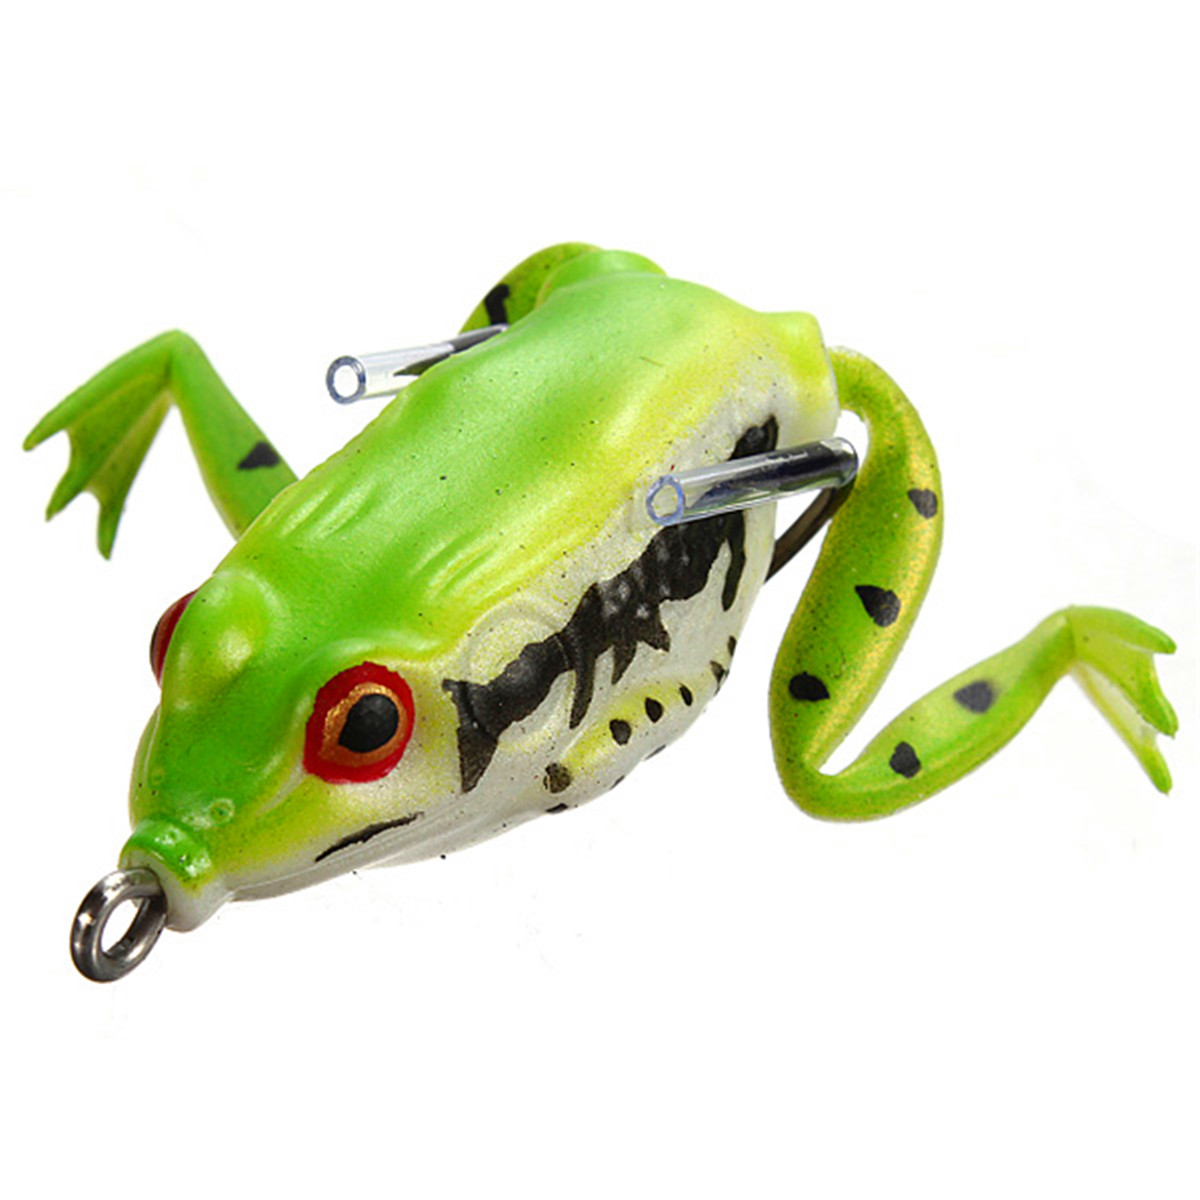 40 55mm soft topwater fishing ray frog lures bass baits for Frogs for fishing